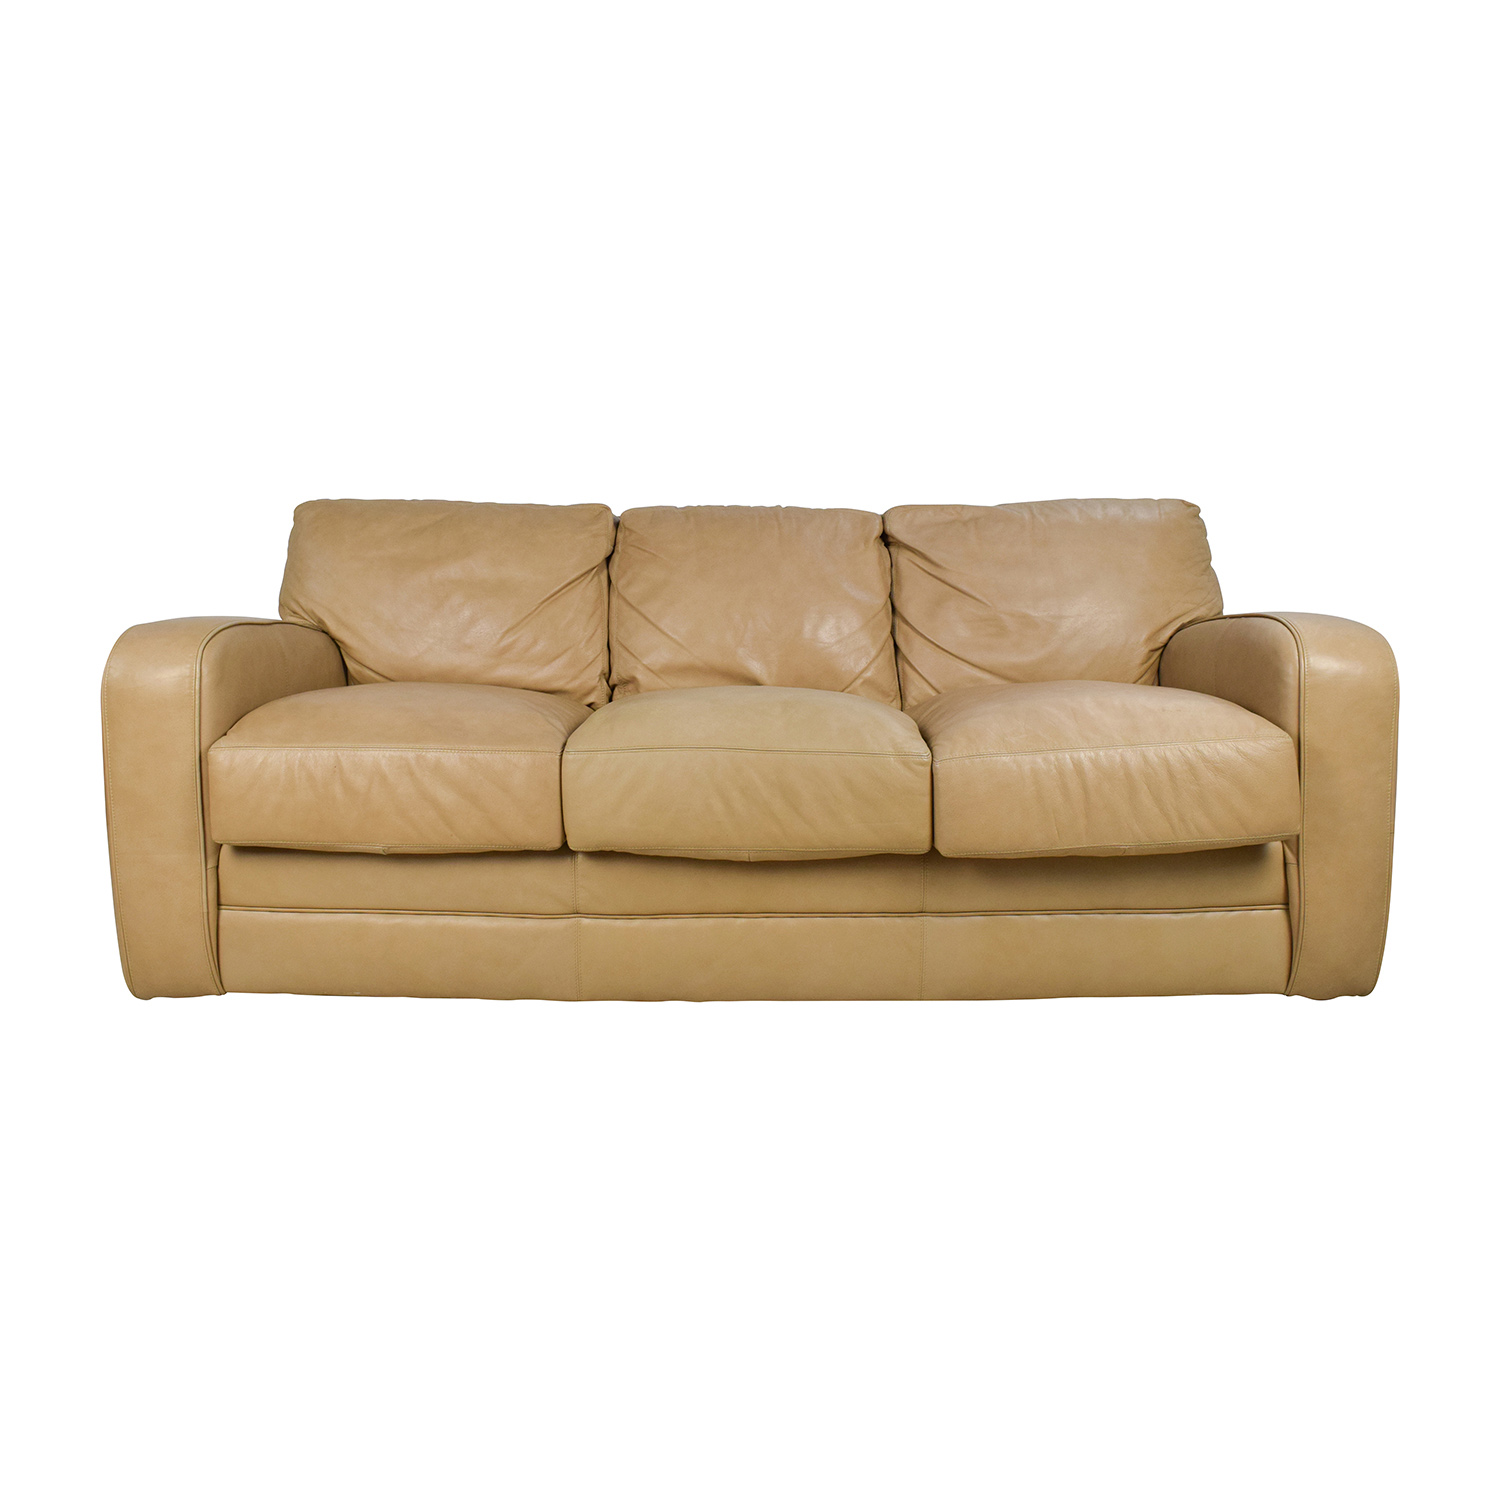 Surprising 78 Off Beige Three Seat Leather Sofa Sofas Evergreenethics Interior Chair Design Evergreenethicsorg